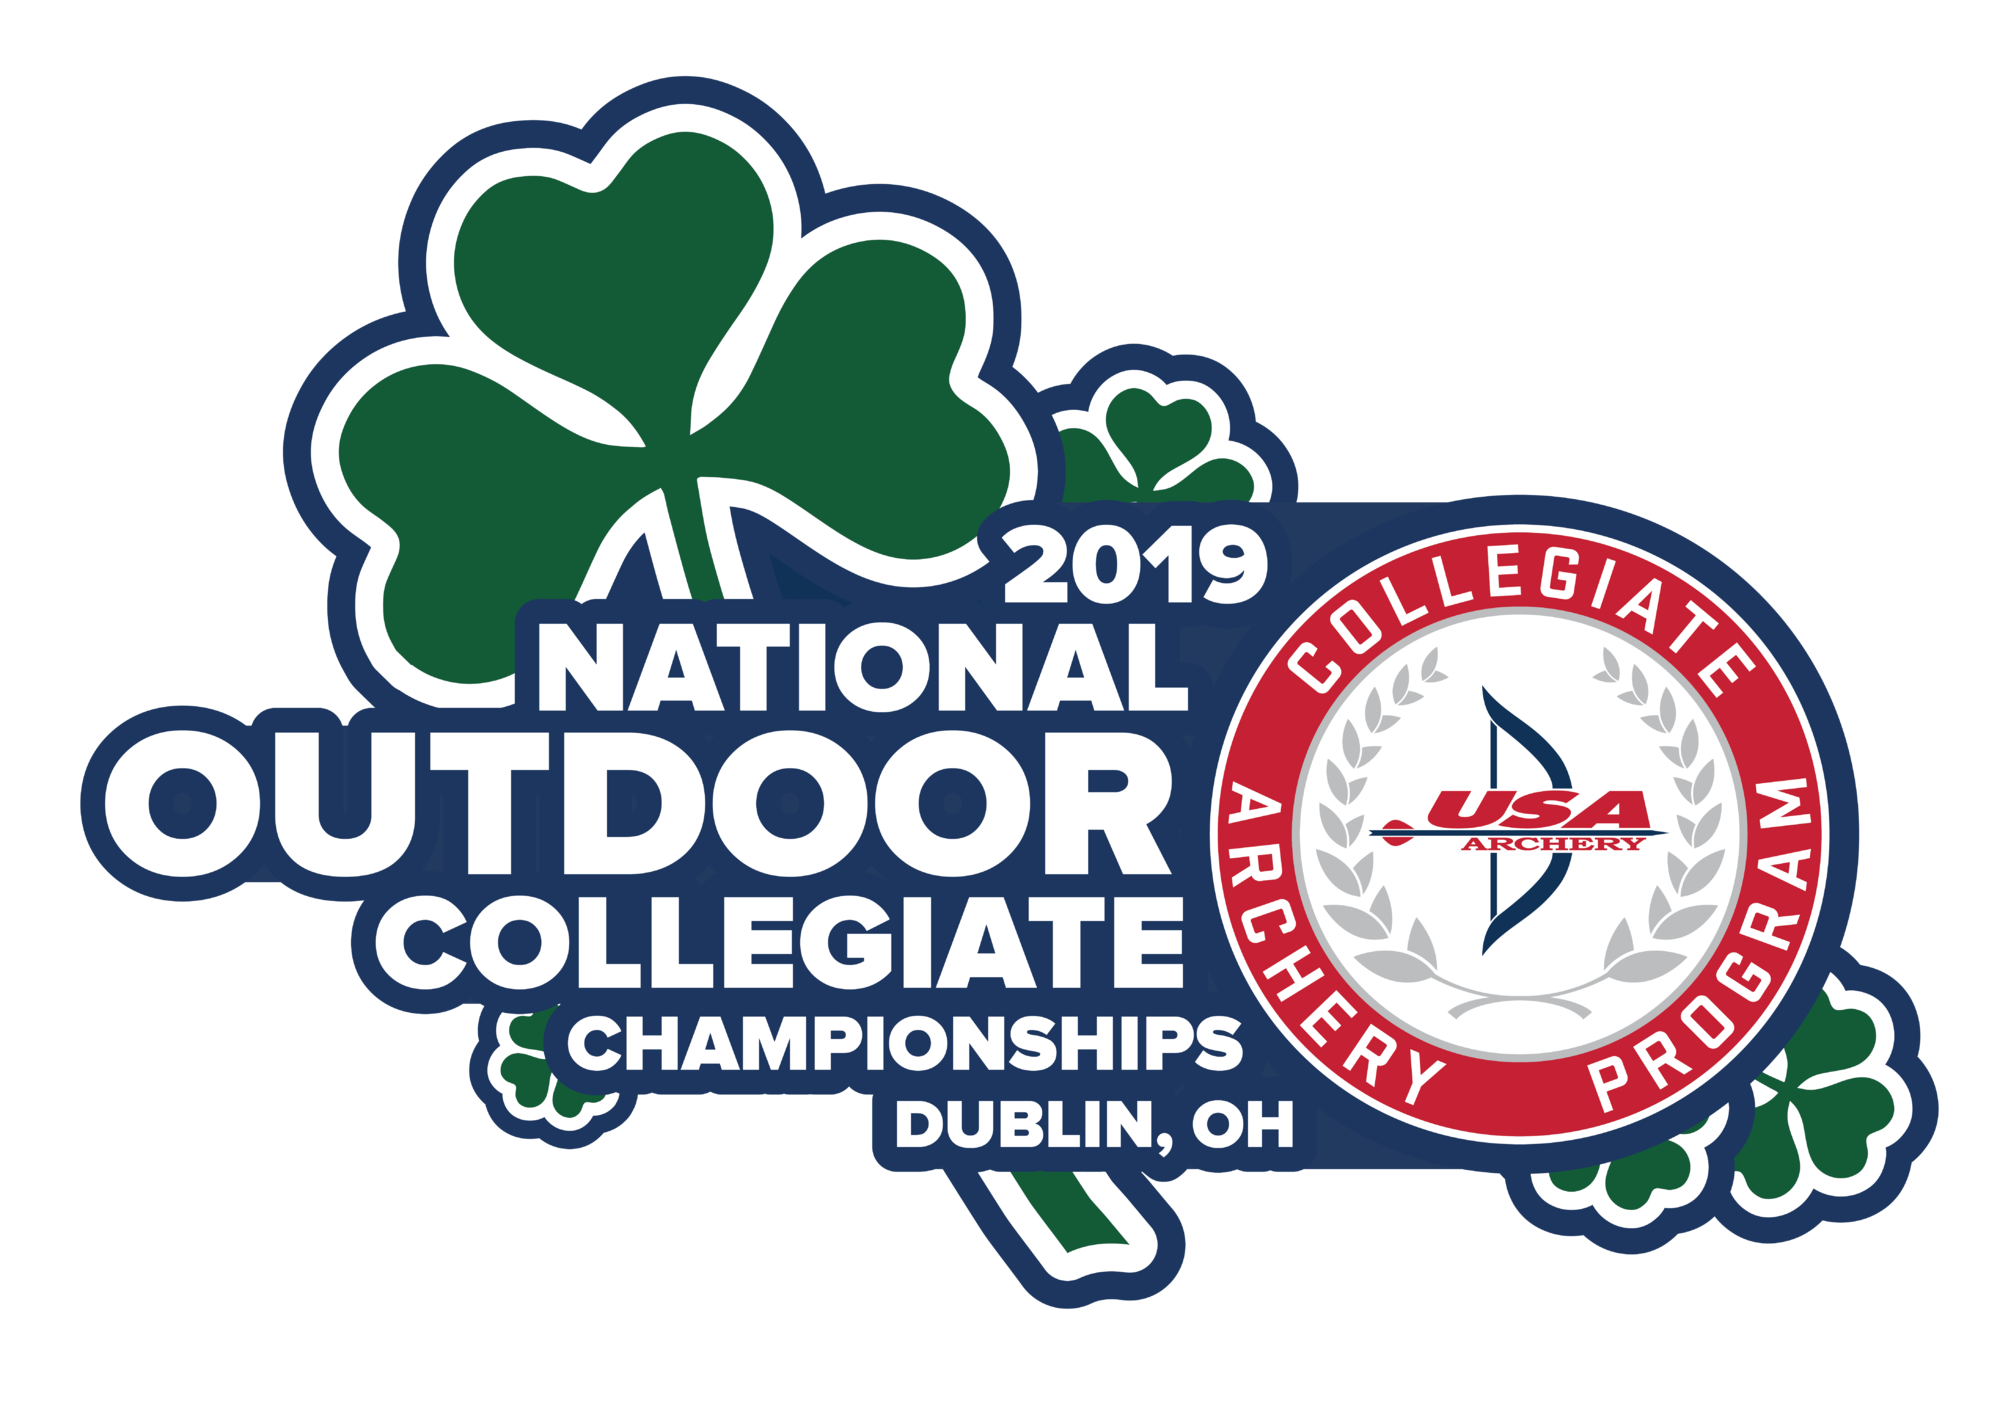 U.S. National Outdoor Collegiate Championships